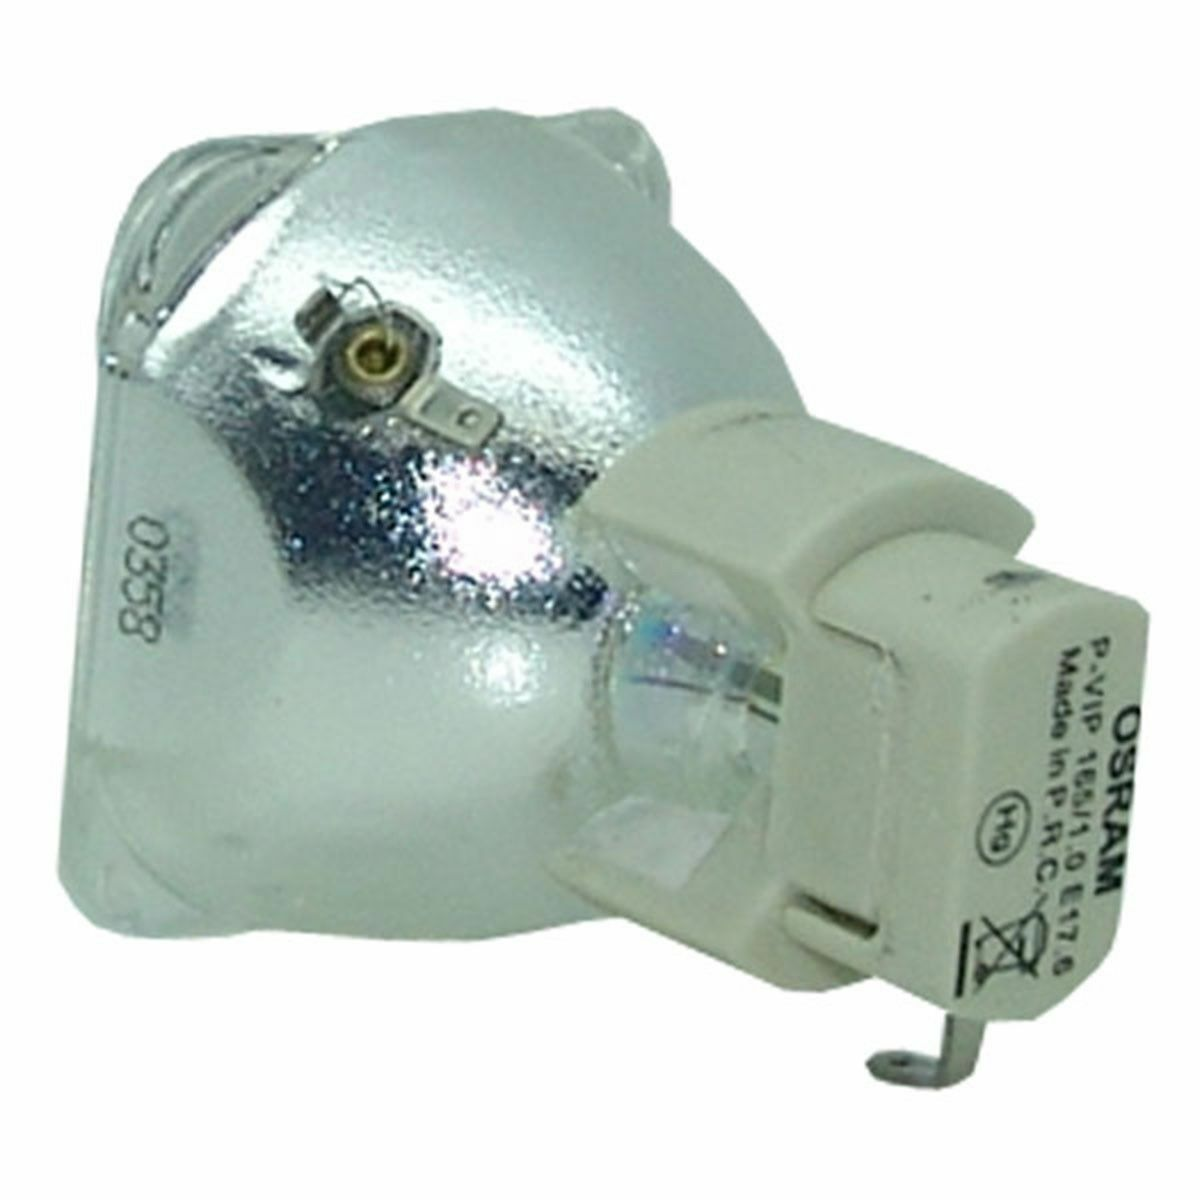 Replacement for Sylvania P-vip165//e17.6 Bare Lamp Only Projector Tv Lamp Bulb by Technical Precision